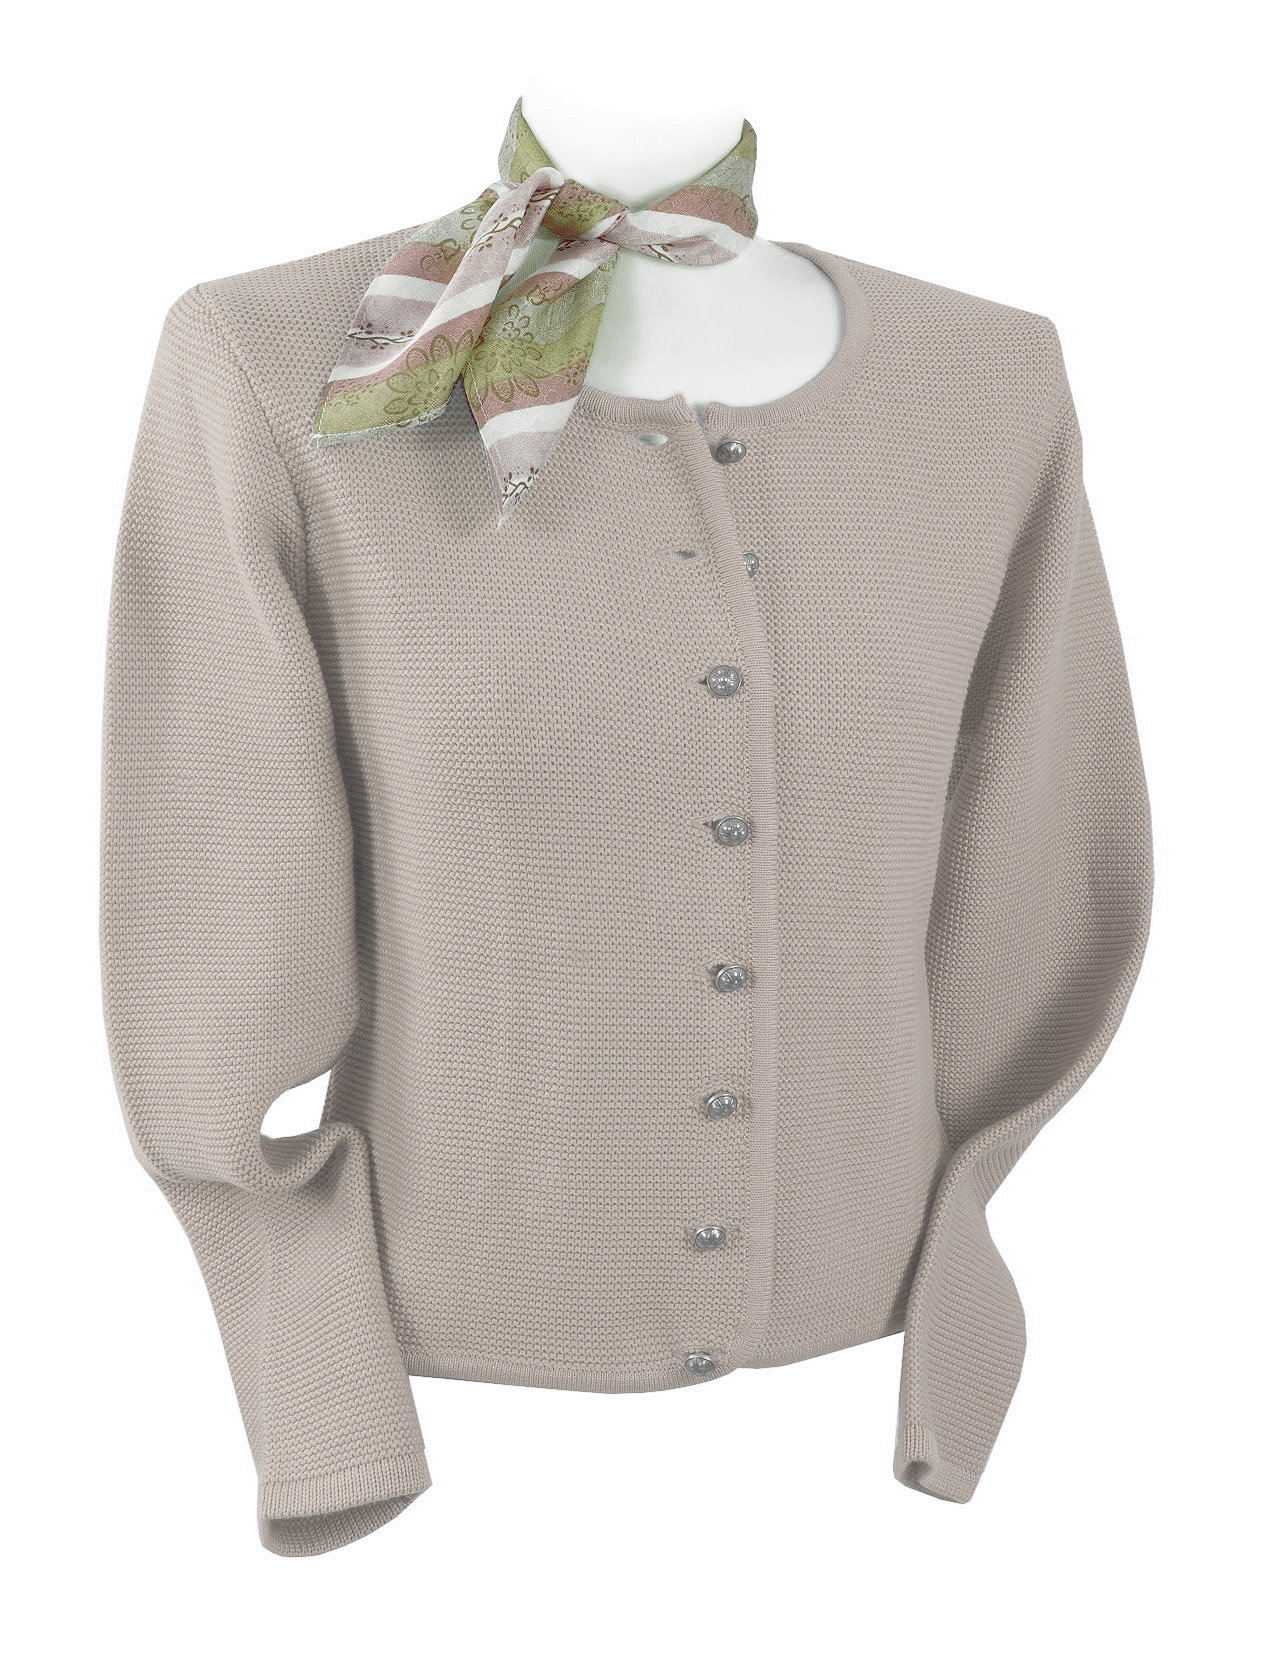 2a52a2d8053f3 Trachtenstrickjacke in Links/Links Beige